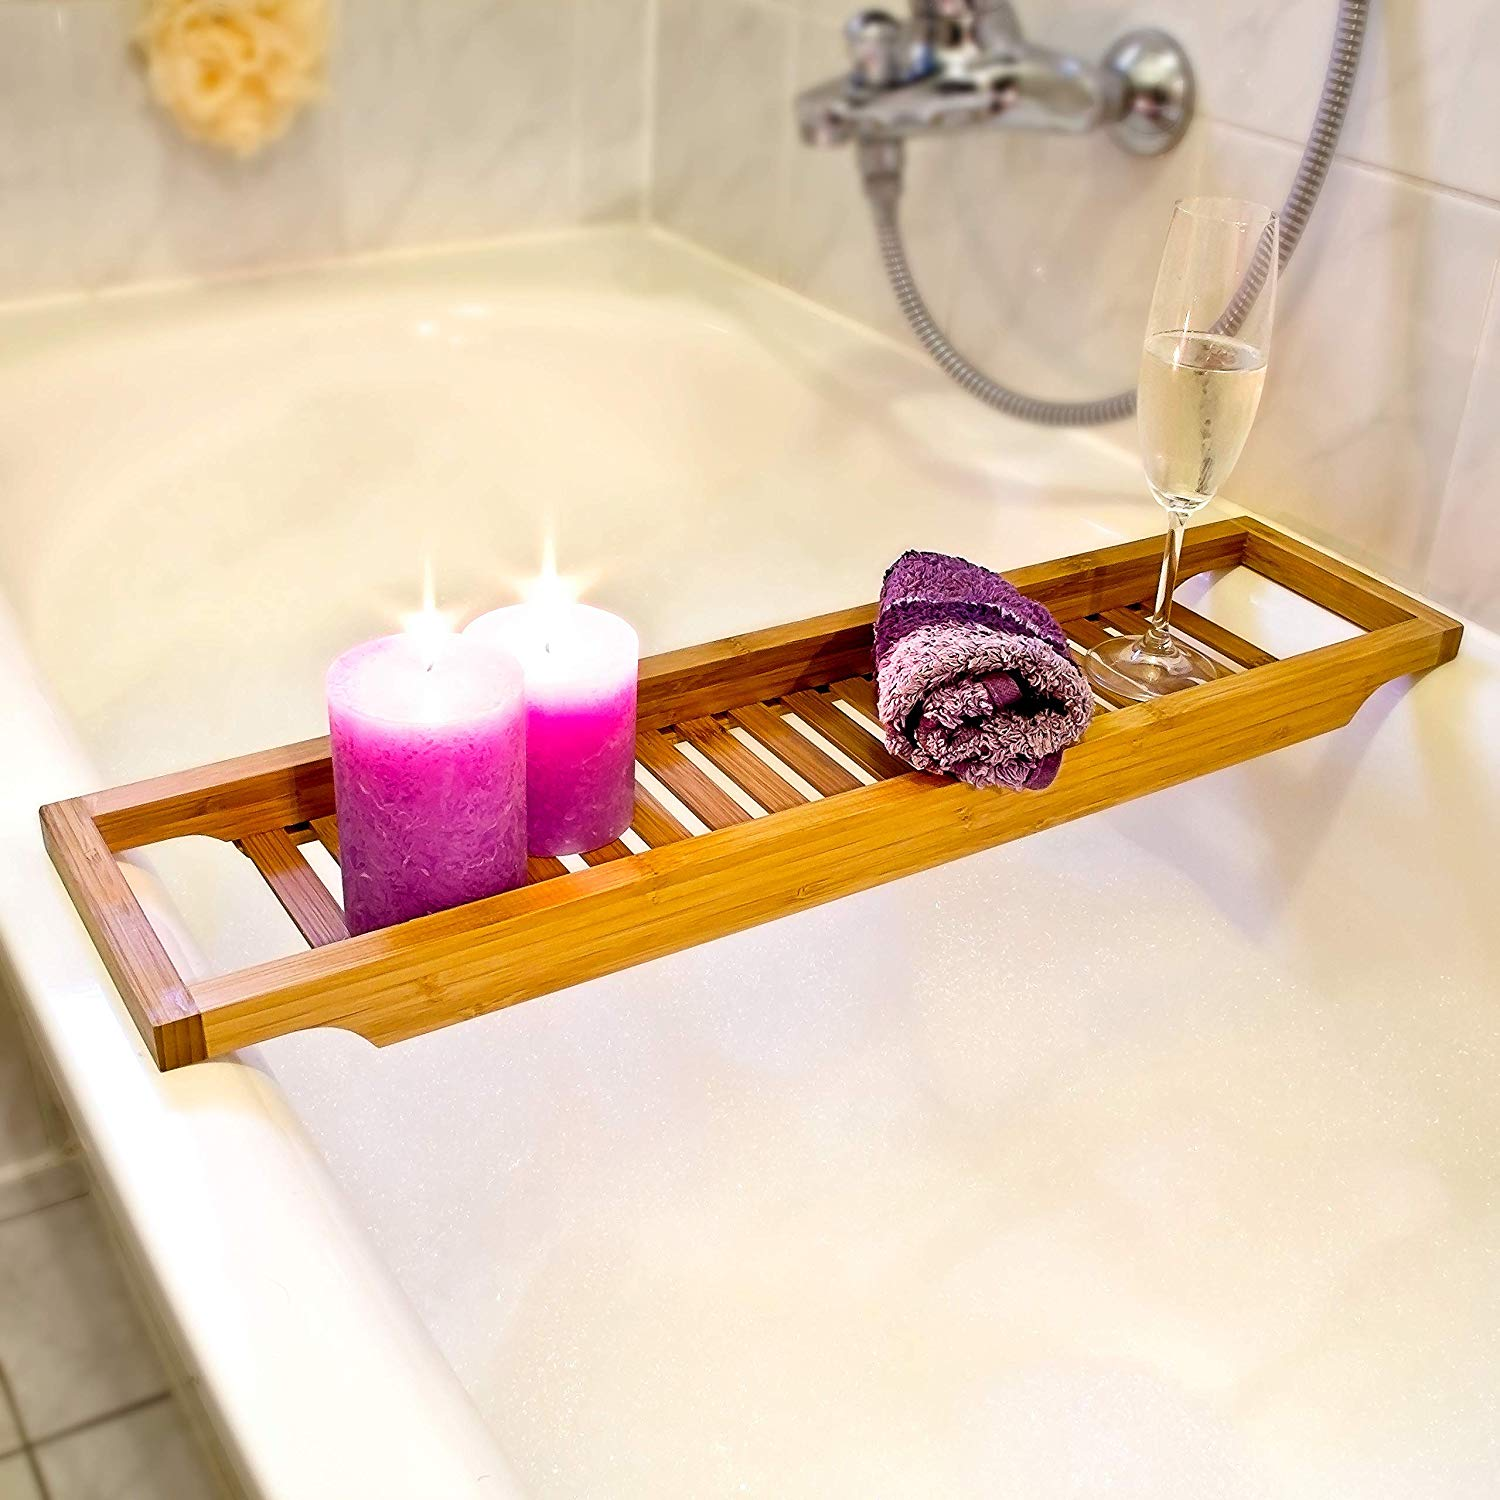 ▷ Best Shelves For Bath. Ranking And Reviews